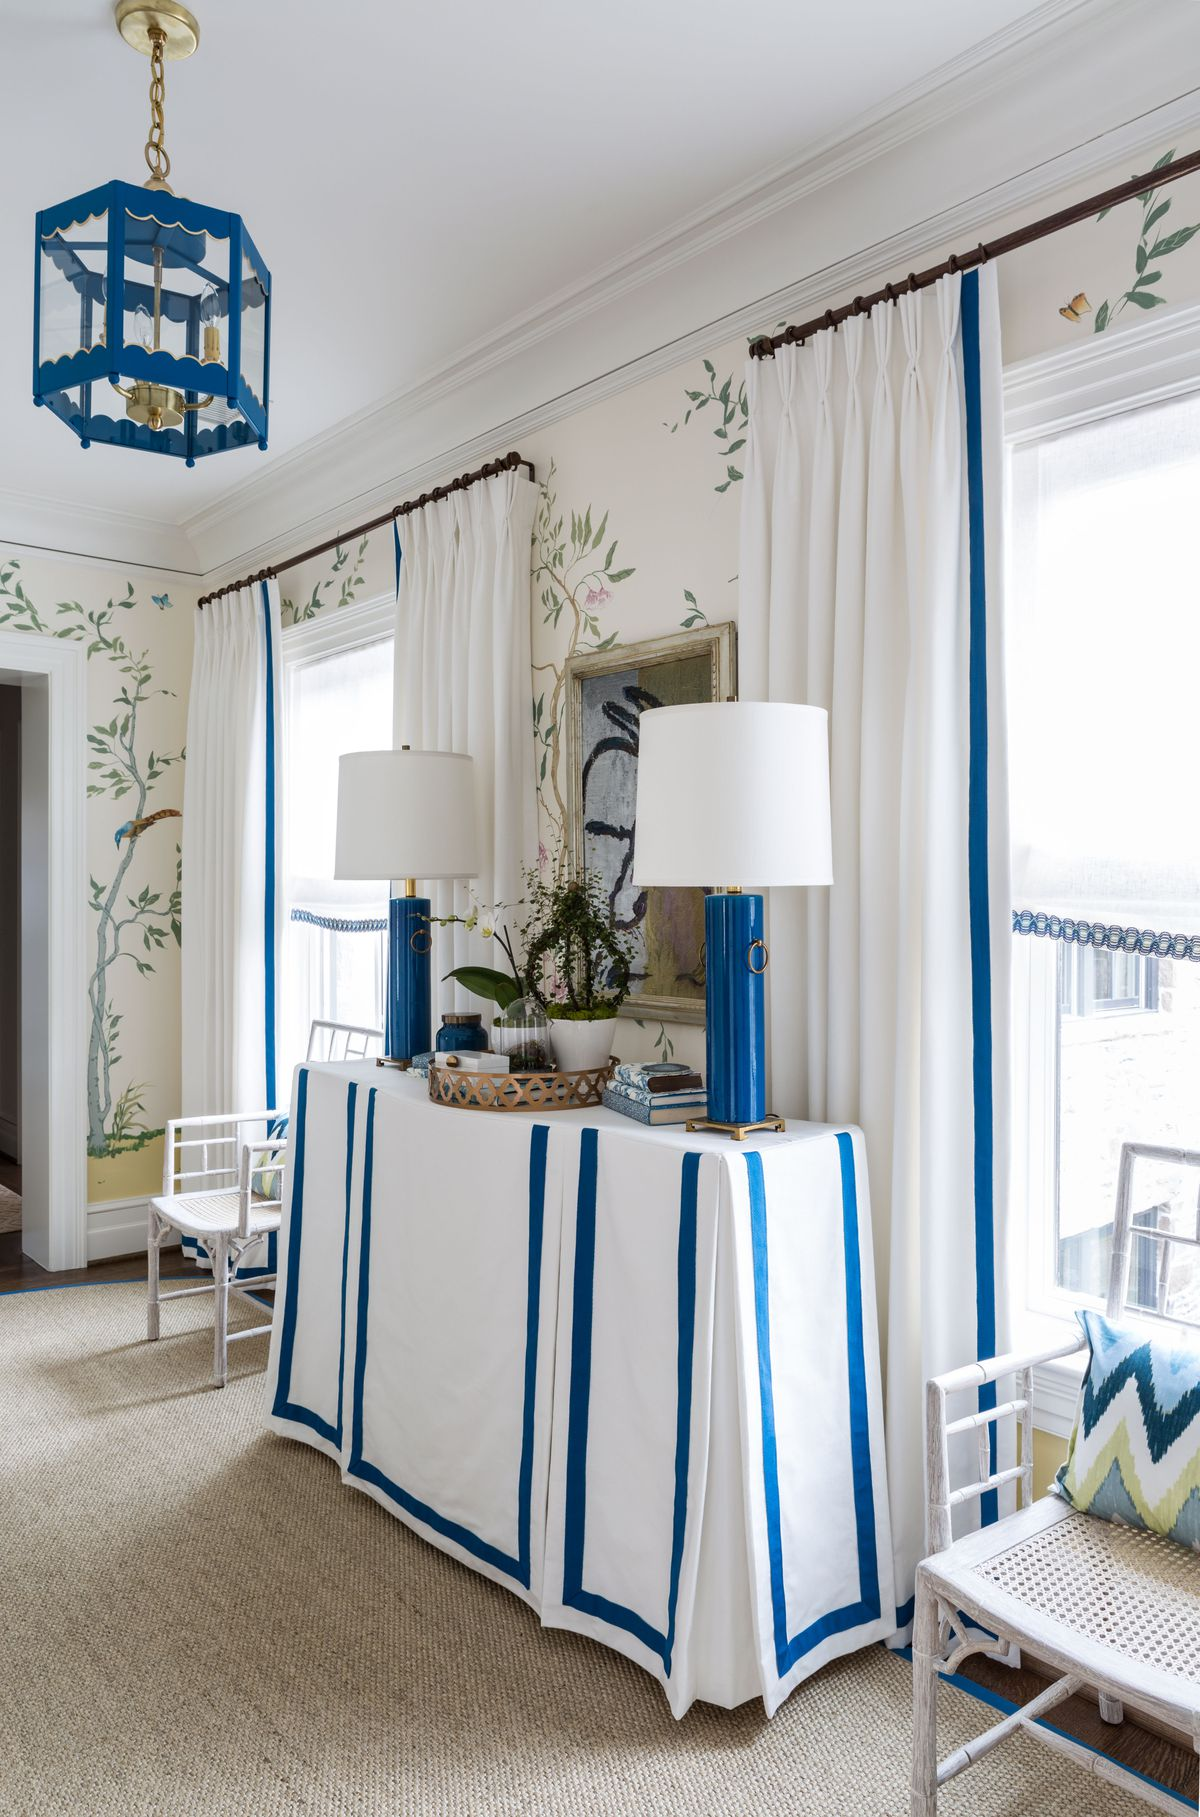 Skirted Table Rectangular Console Blue White Plates Christopher Nutter Scalloped Lantern Sisal Rug Chinoiserie Wallpaper Beige